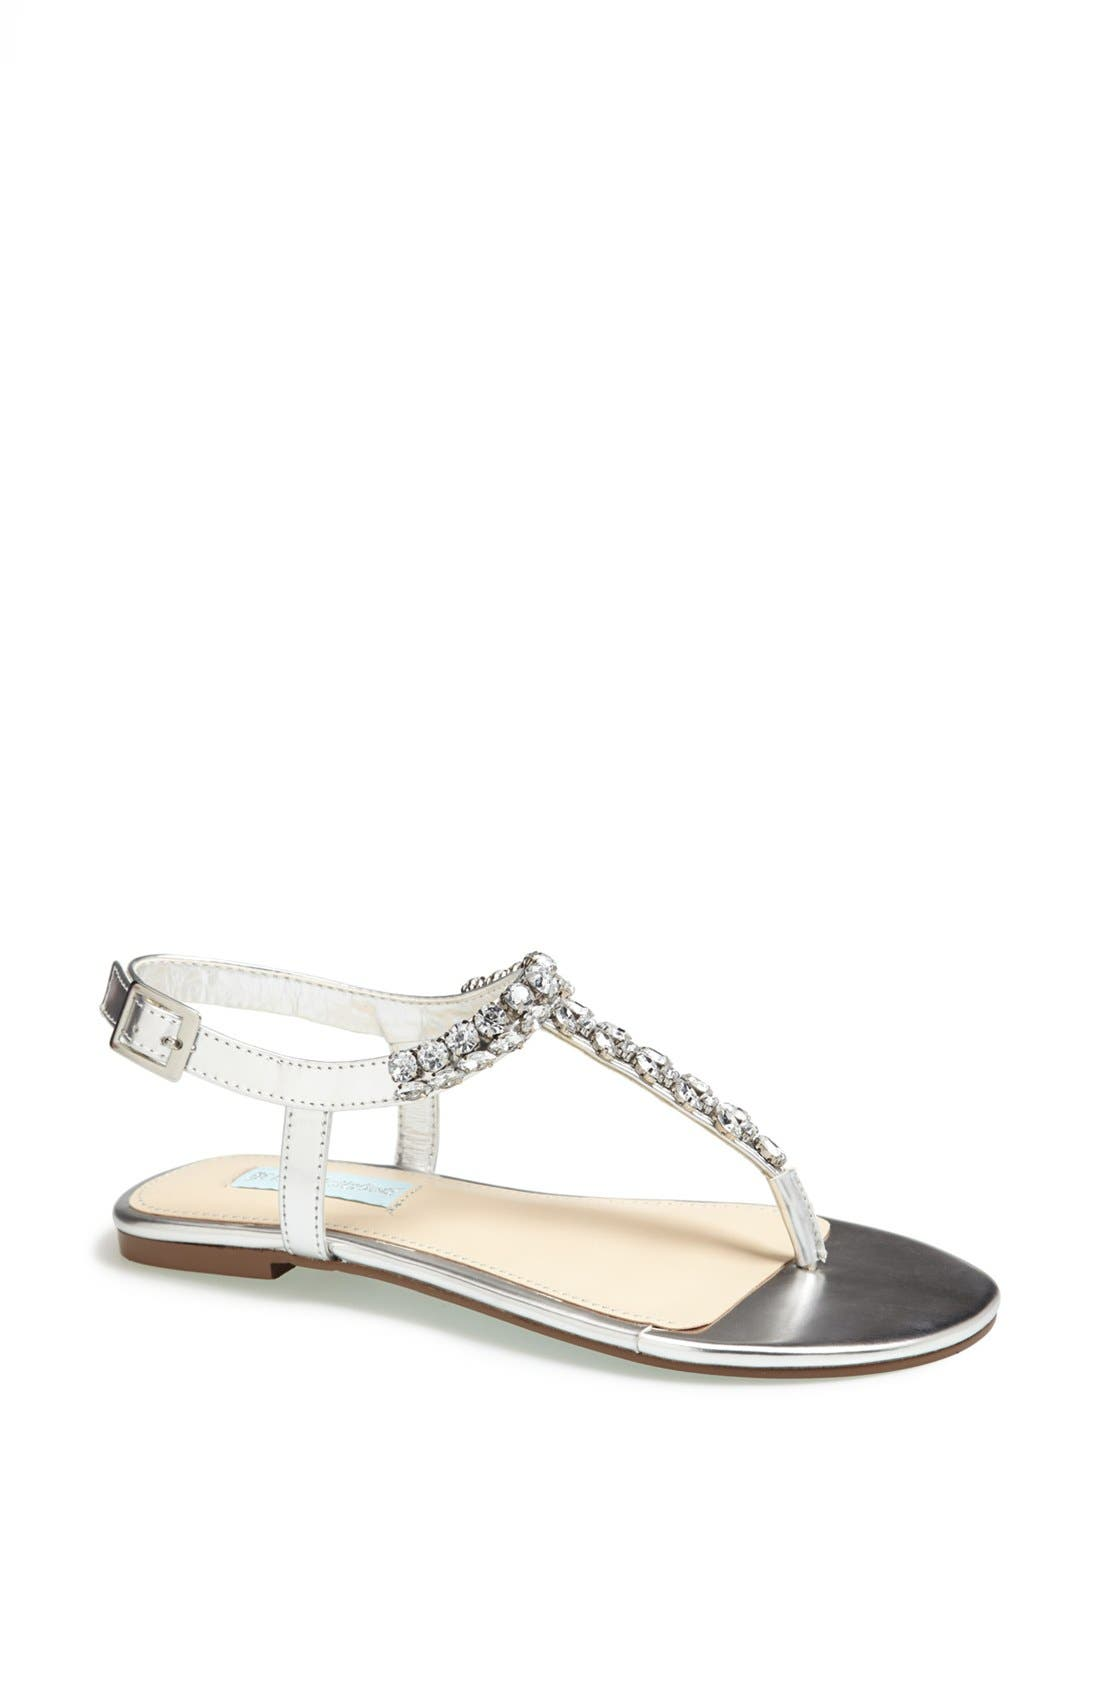 Alternate Image 1 Selected - Blue by Betsey Johnson 'Spark' Crystal Embellished Thong Sandal